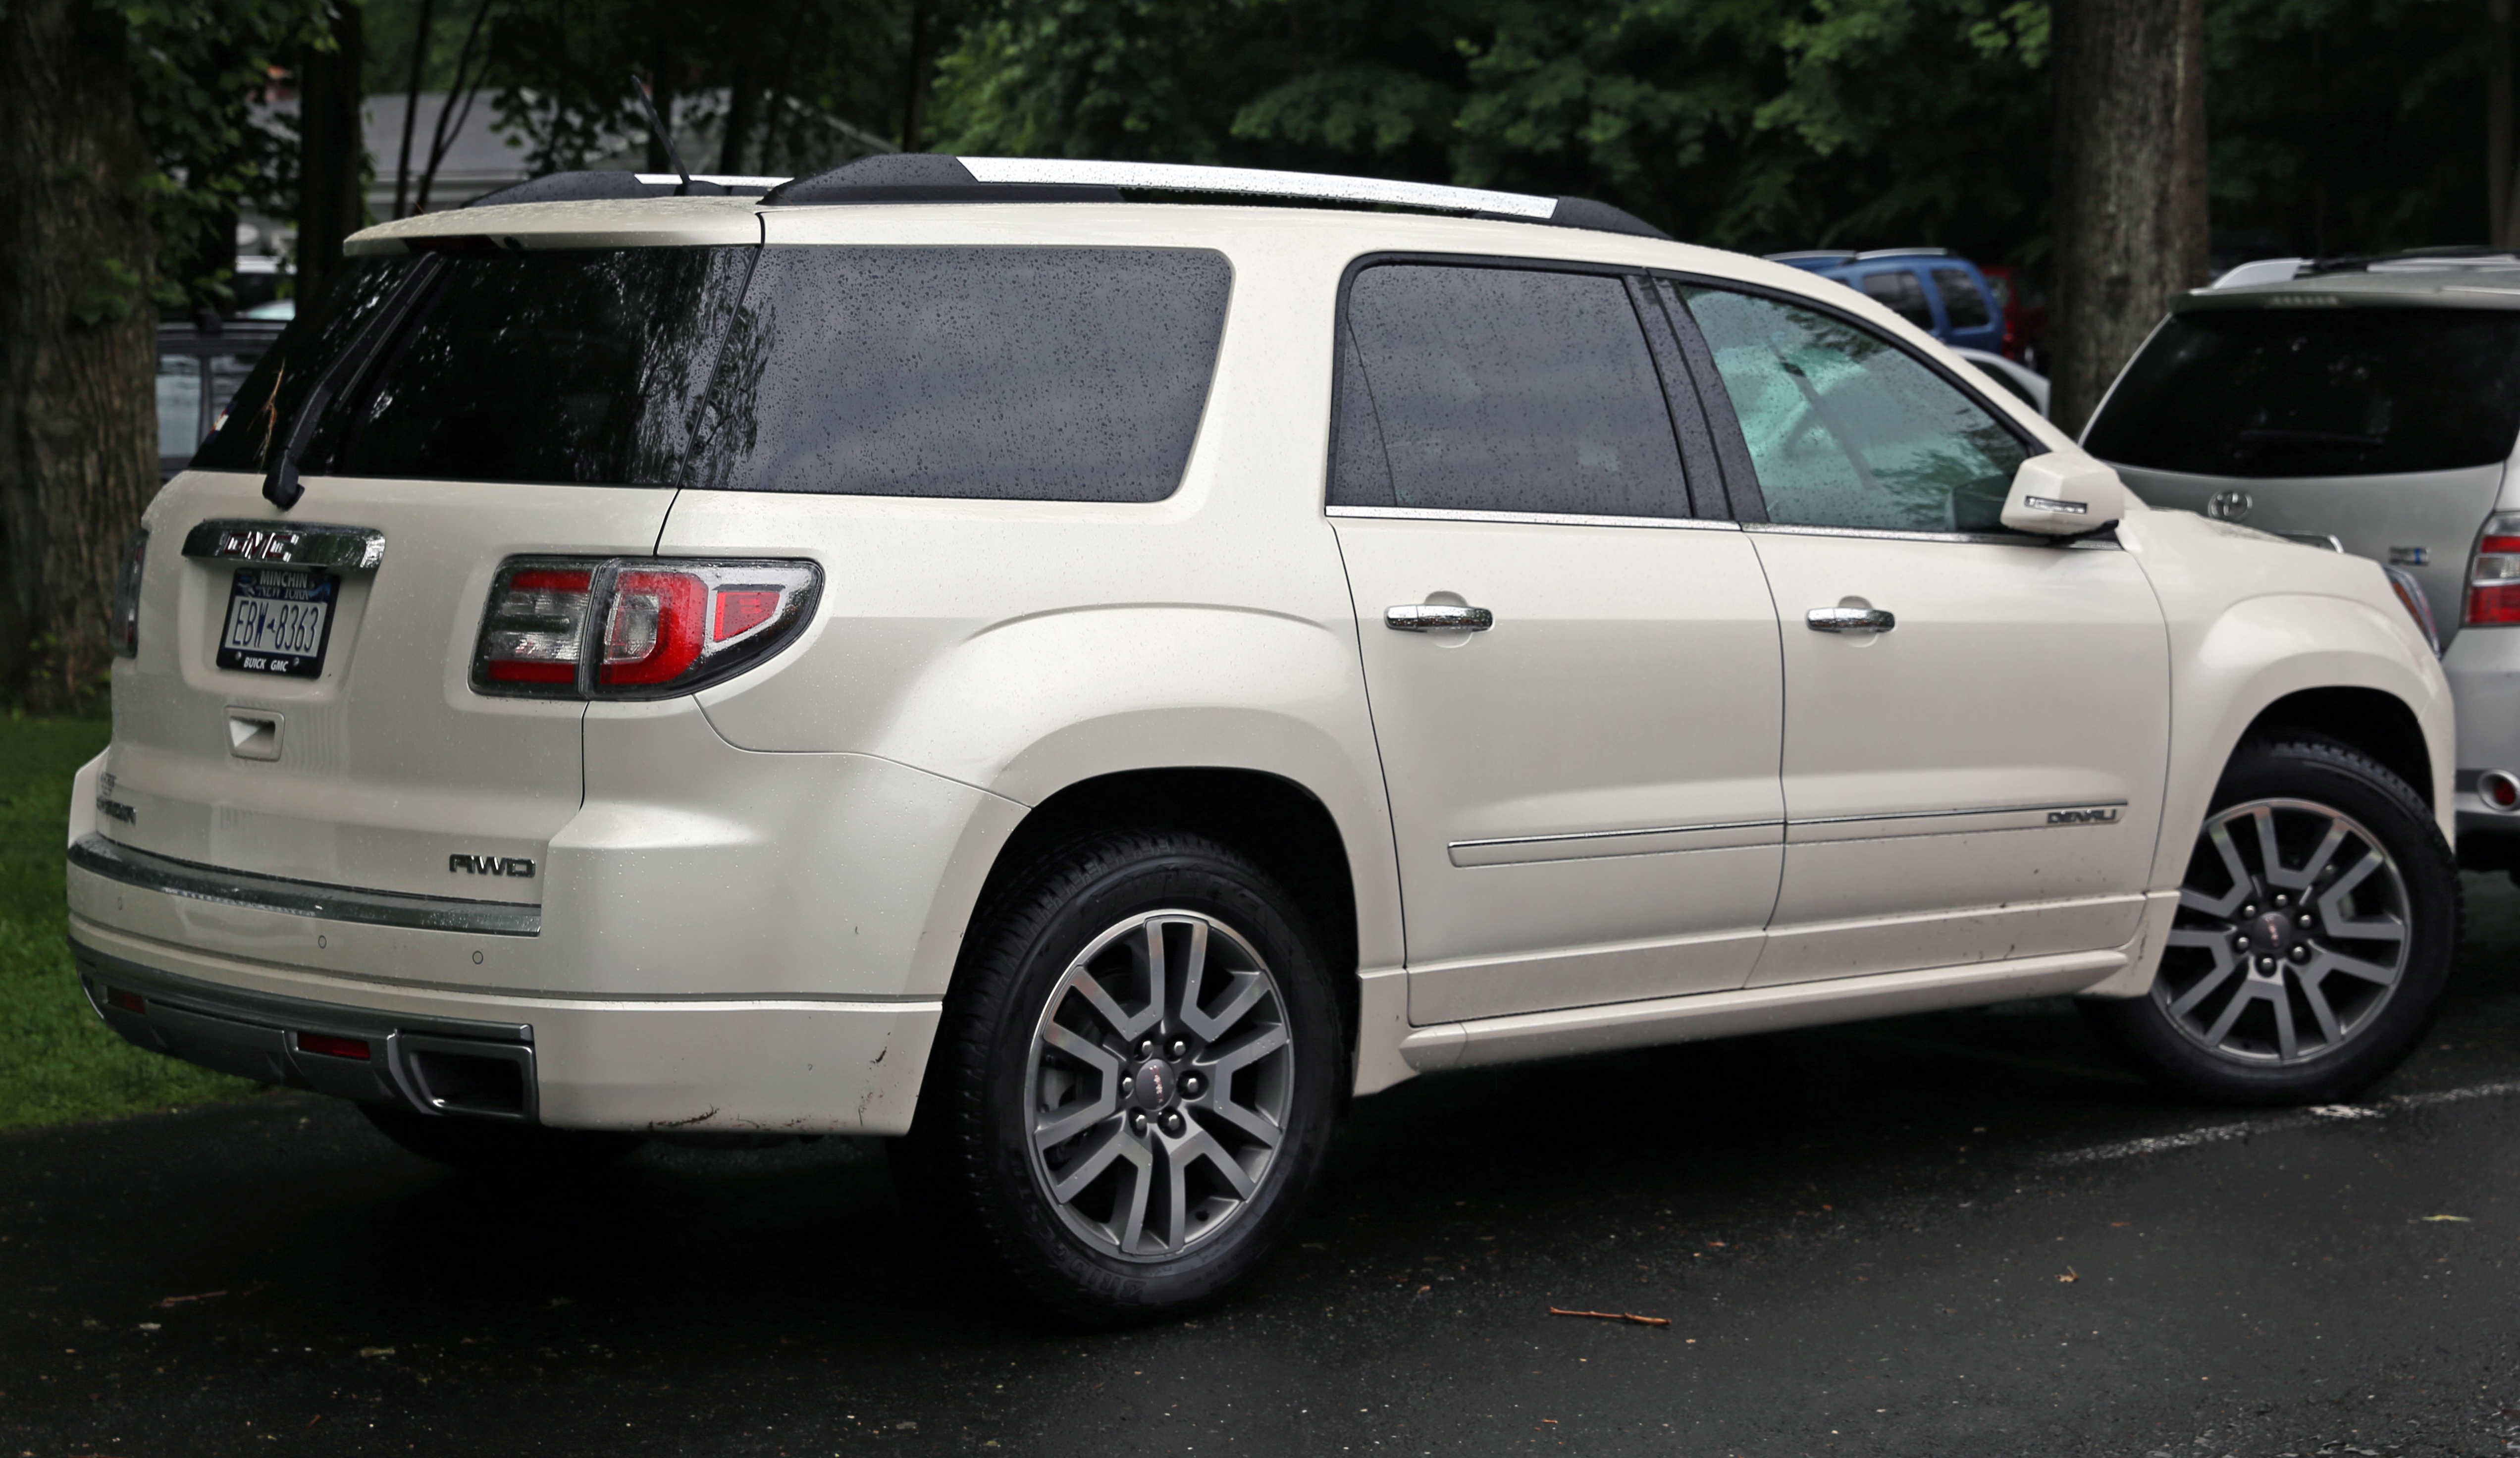 Mesmerizing On A 2009 Gmc Denali Fuse Box Images - Best Image Wire ...